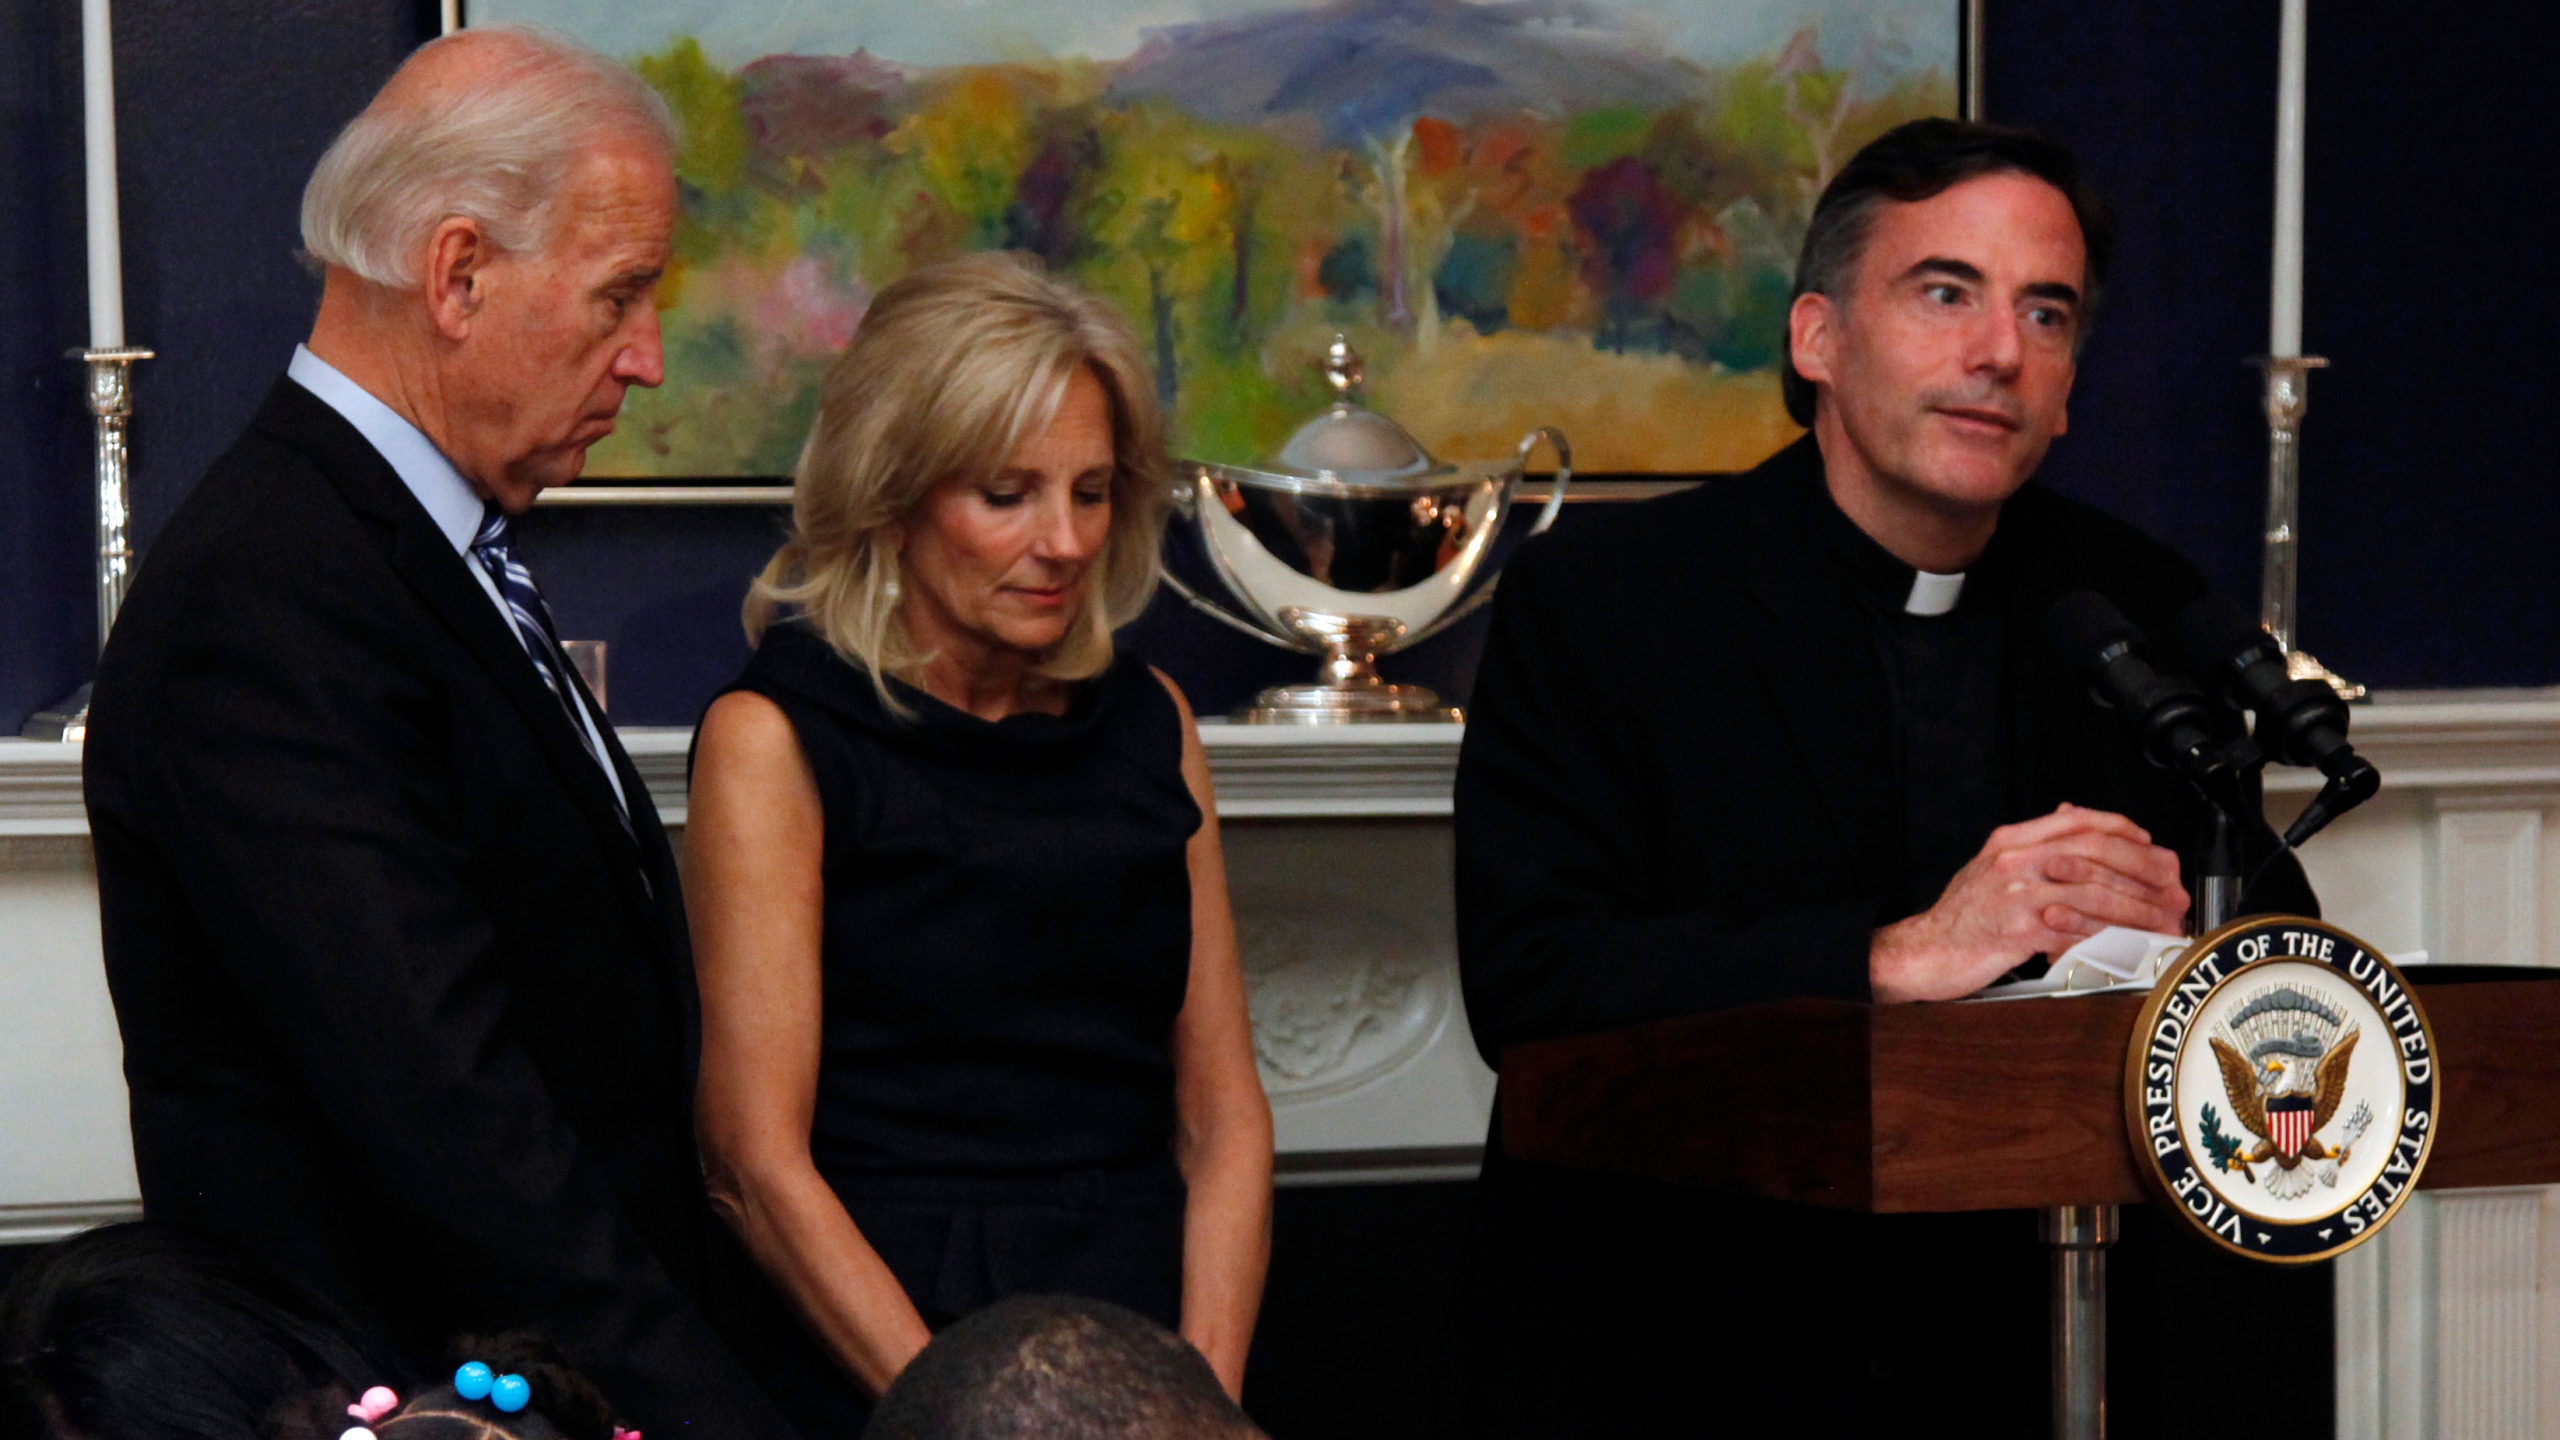 Joe Biden, Jill Biden, Anthony McDaniel, Kevin O'Brien